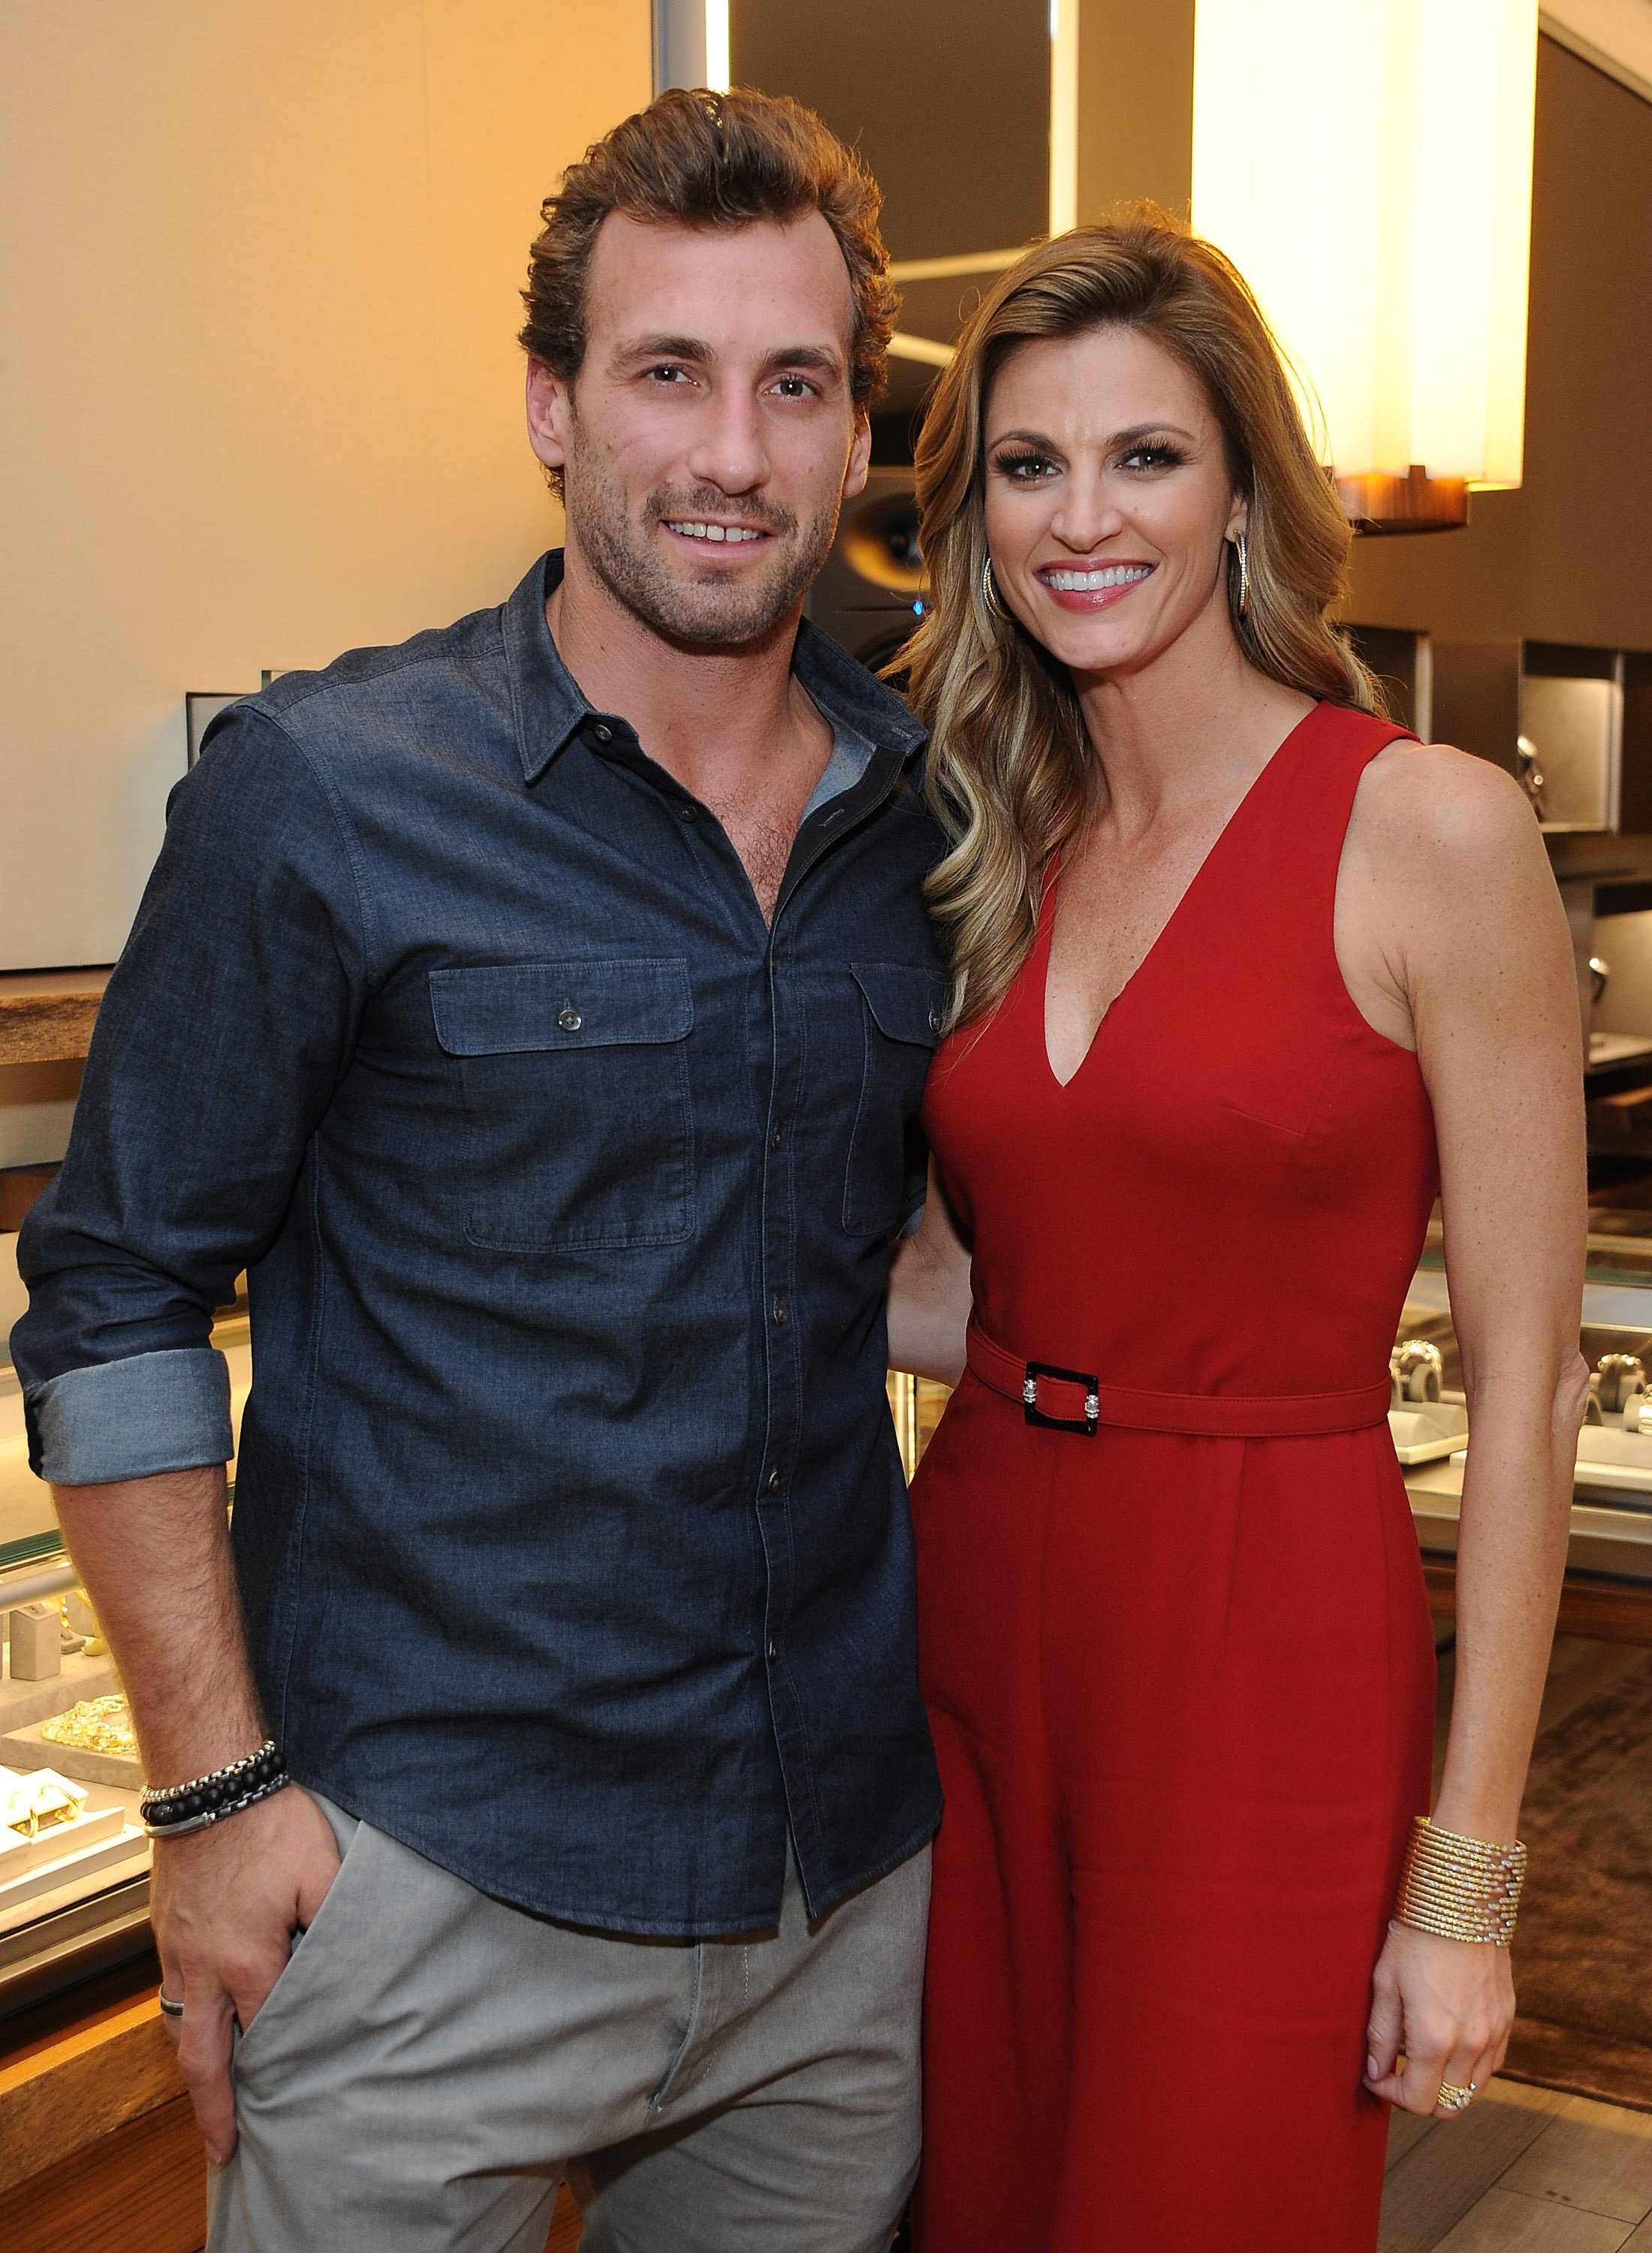 Jarret Stoll and Erin Andrews celebrate the launch of The Men's Forged Carbon Collection on November 10, 2014 | Photo: GettyImages